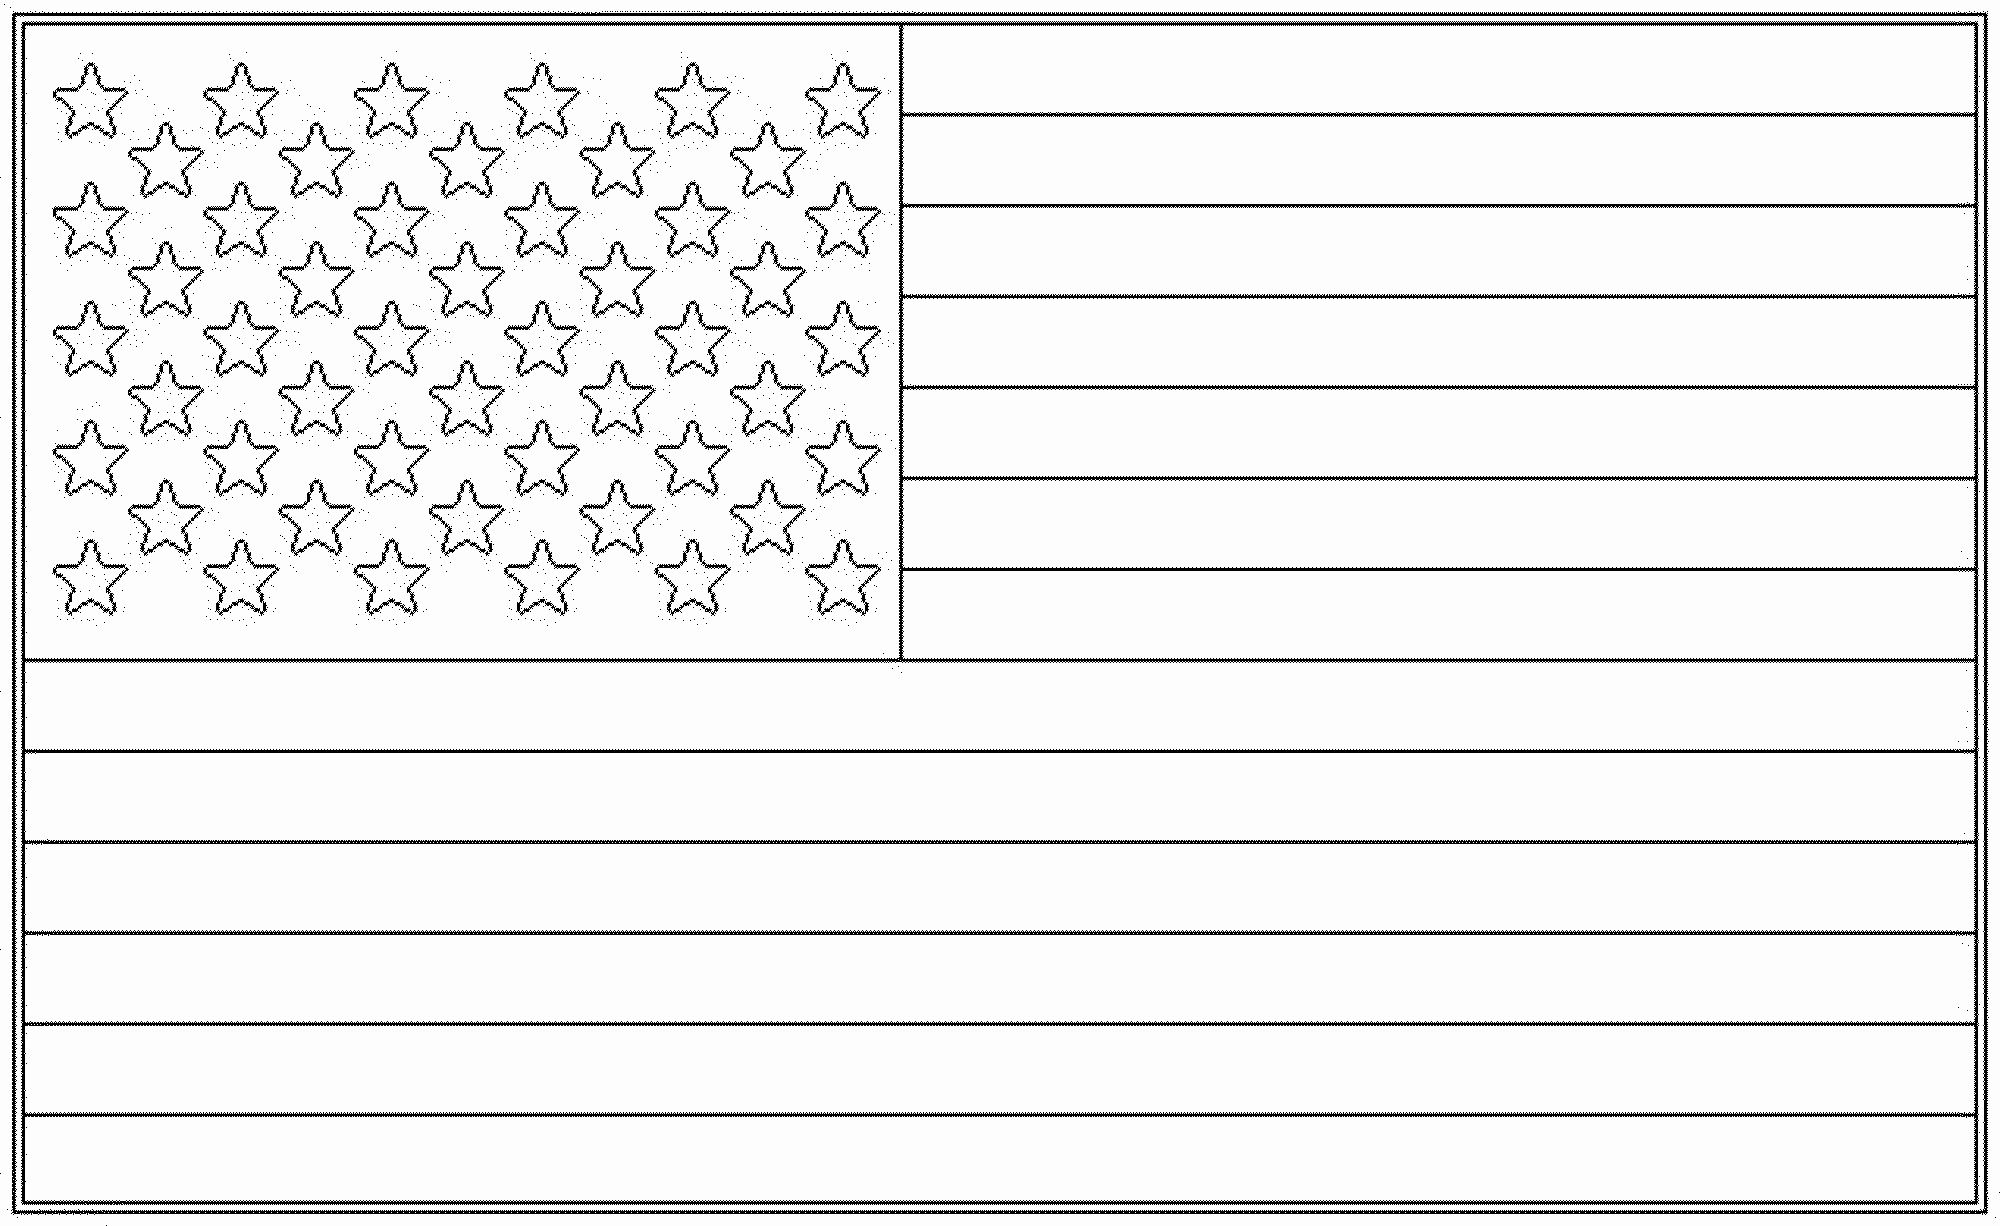 United States Flag Coloring Sheets Luxury American Flag Coloring Page For The Love Of The American Flag Coloring Page Flag Coloring Pages American Flag Colors